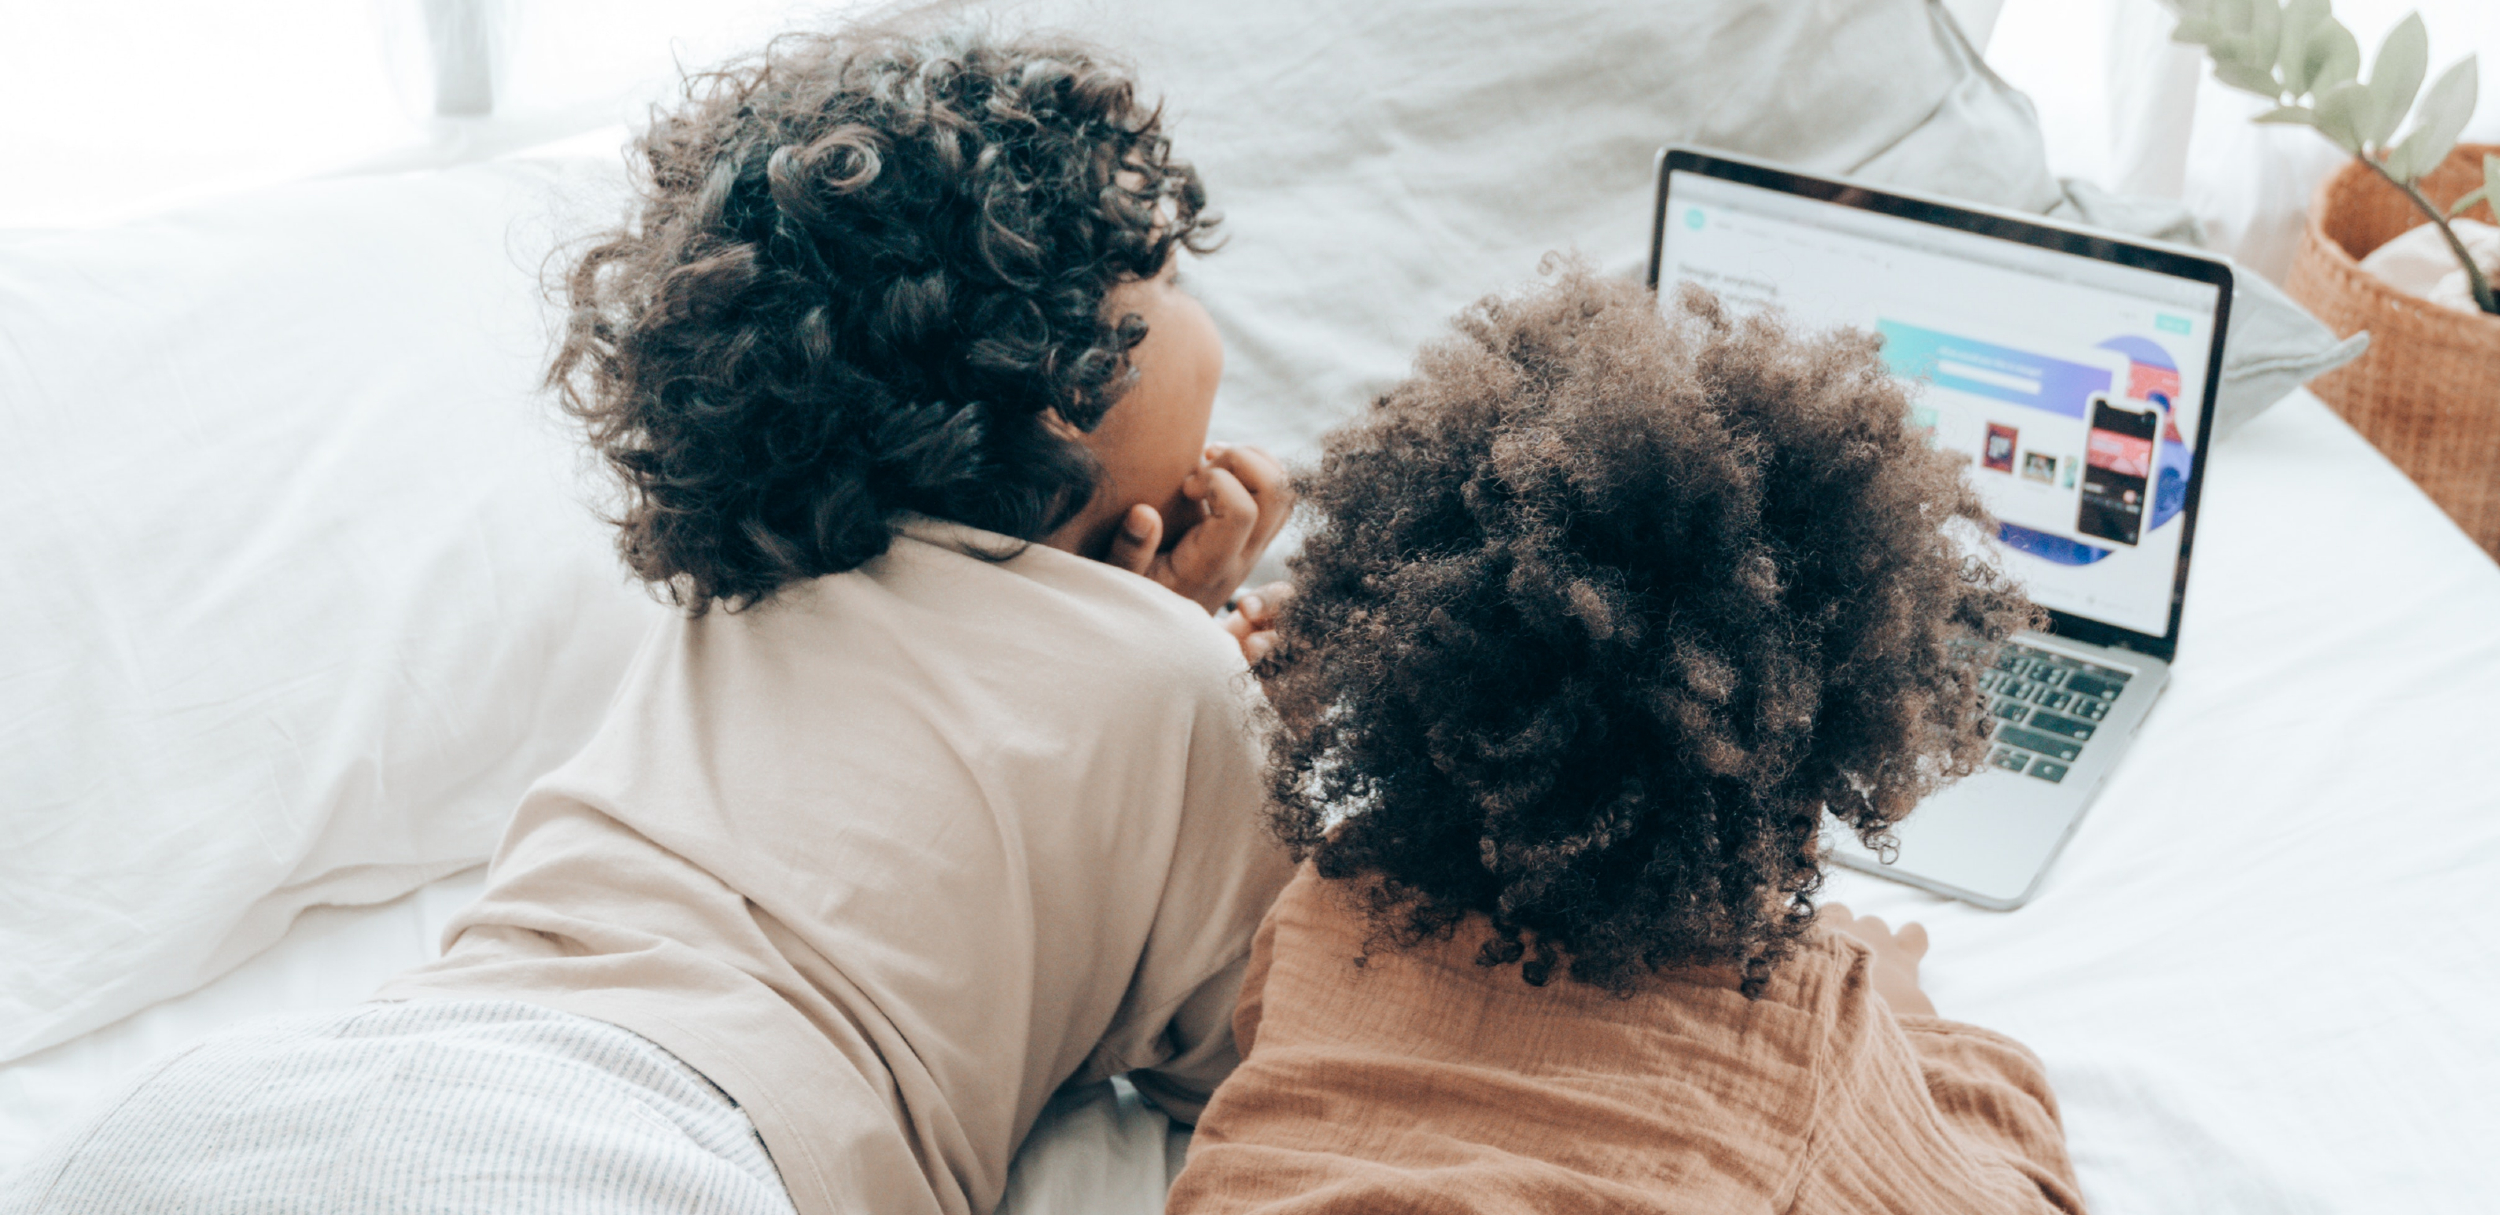 Parenting for a Digital Future July 2020 roundup